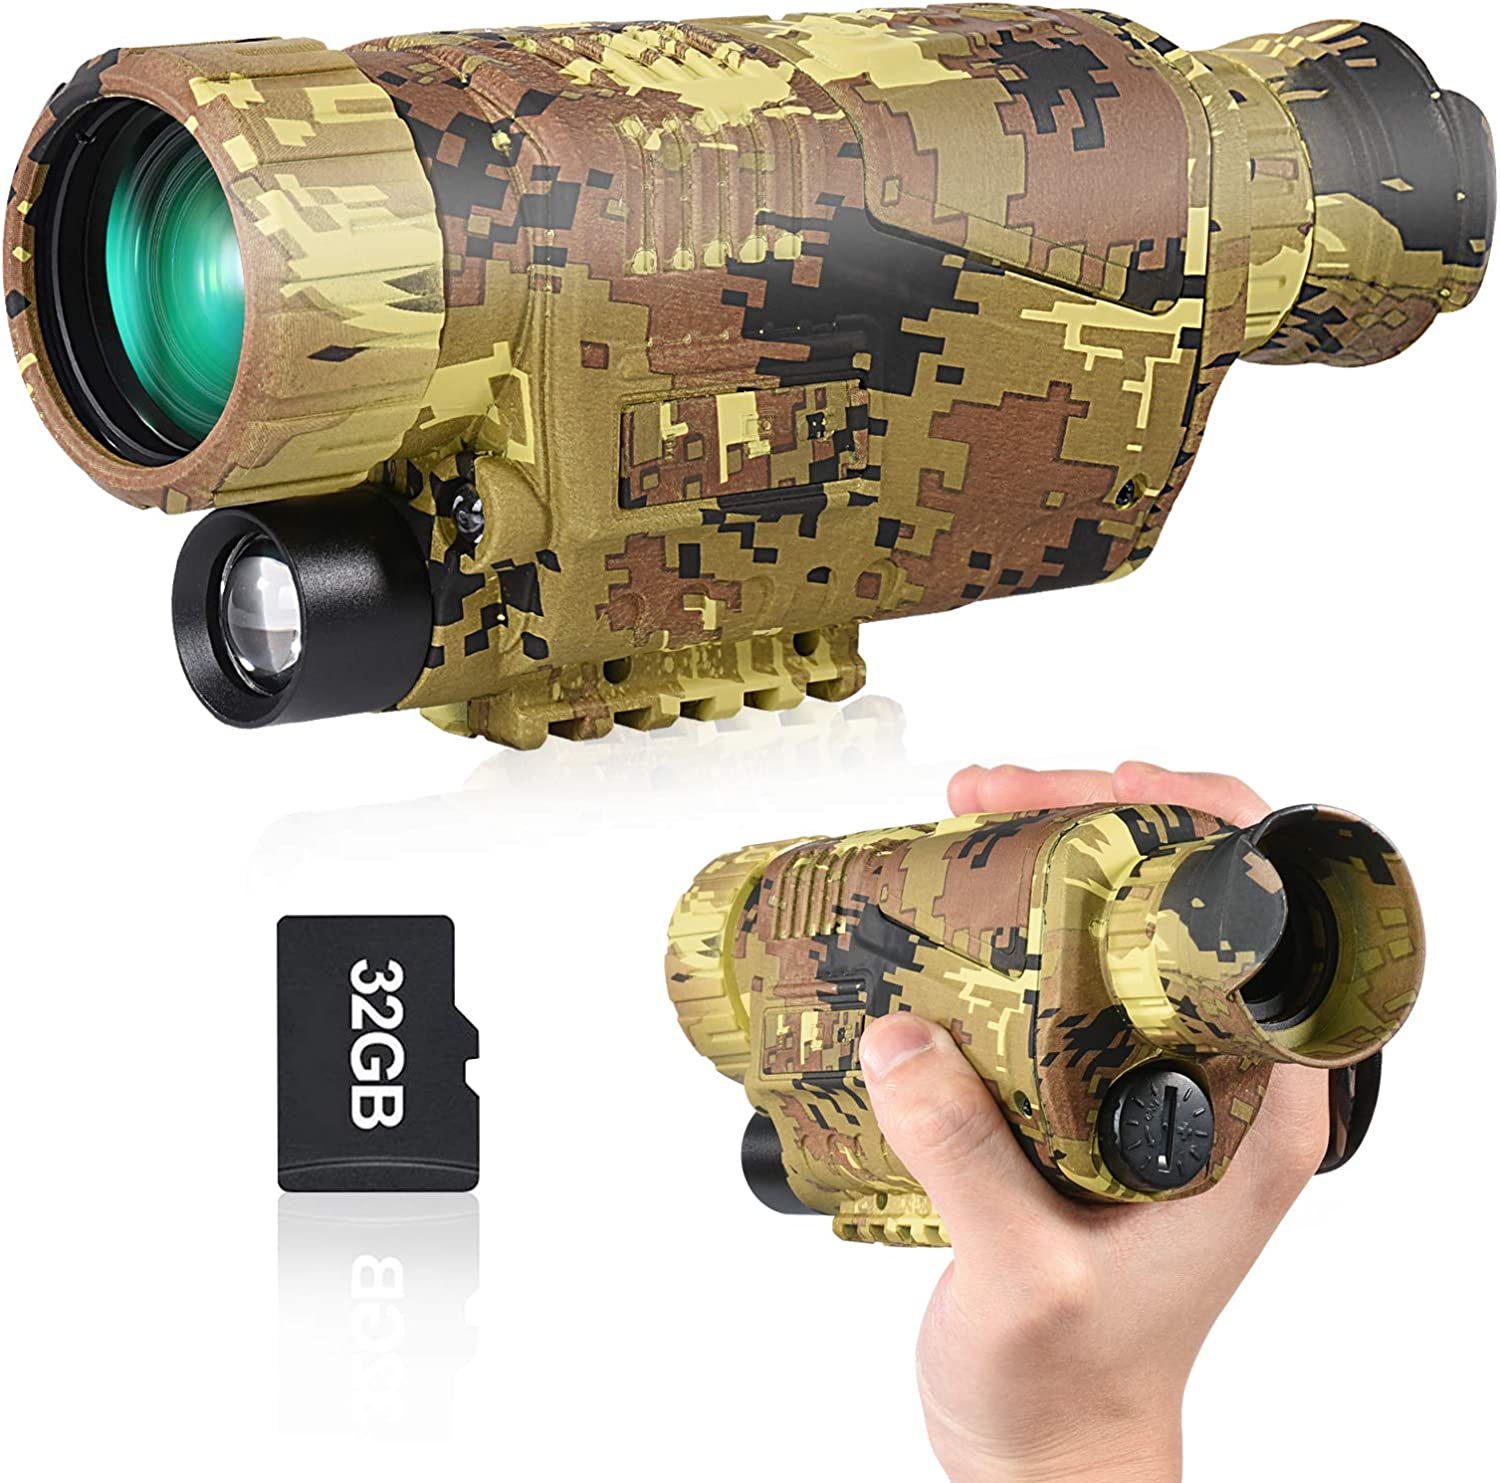 Top 10 Best Night Vision Goggles for Hunting [Buying Guide Reviews - 2021] 9